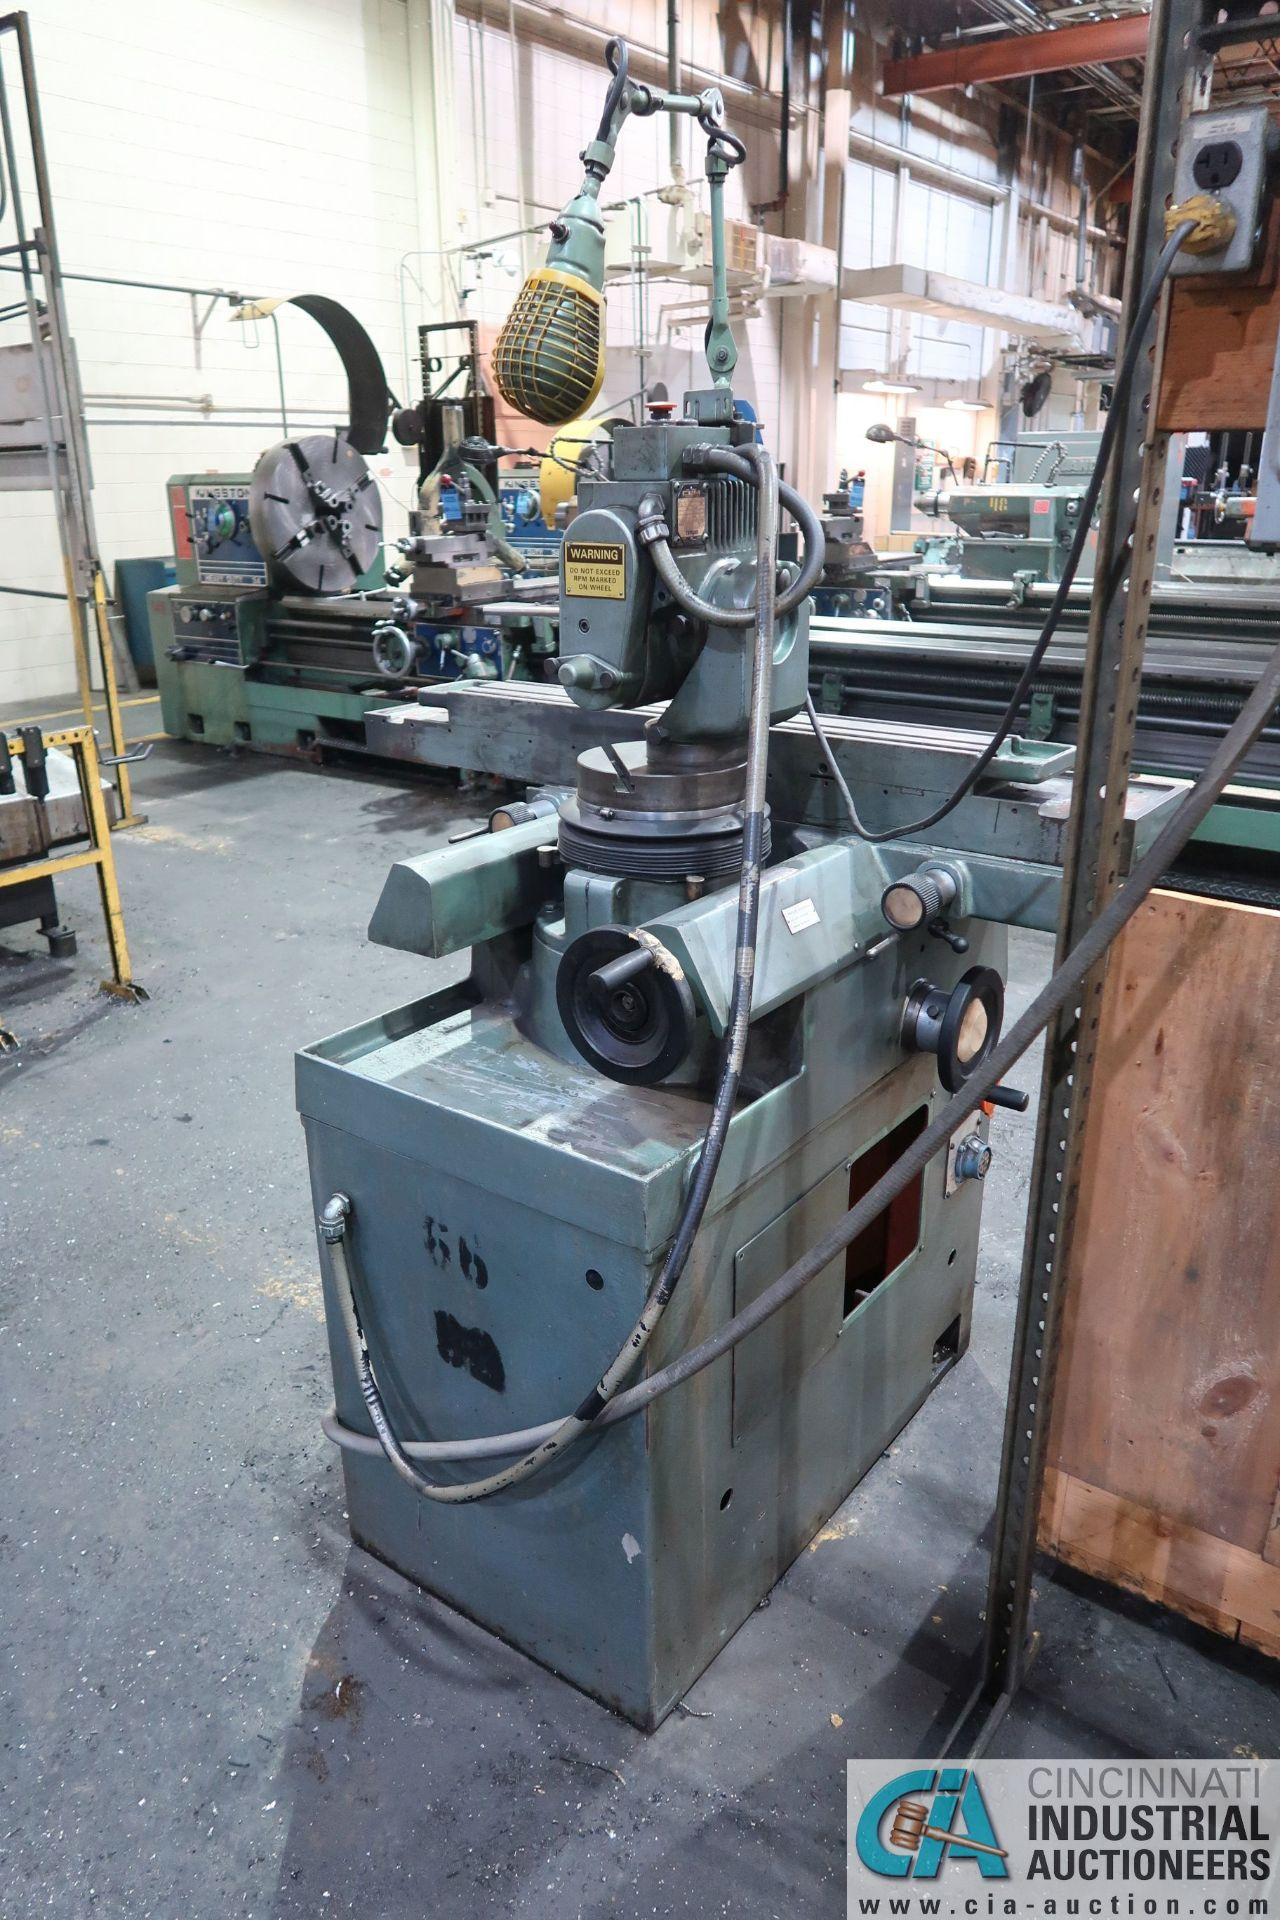 CINCINNATI TYPE MT TOOL GRINDER; S/N 1D2F1ABF-15, WITH (1) WOOD CRATE MISCELLANEOUS FIXTURES (NEW - Image 4 of 11